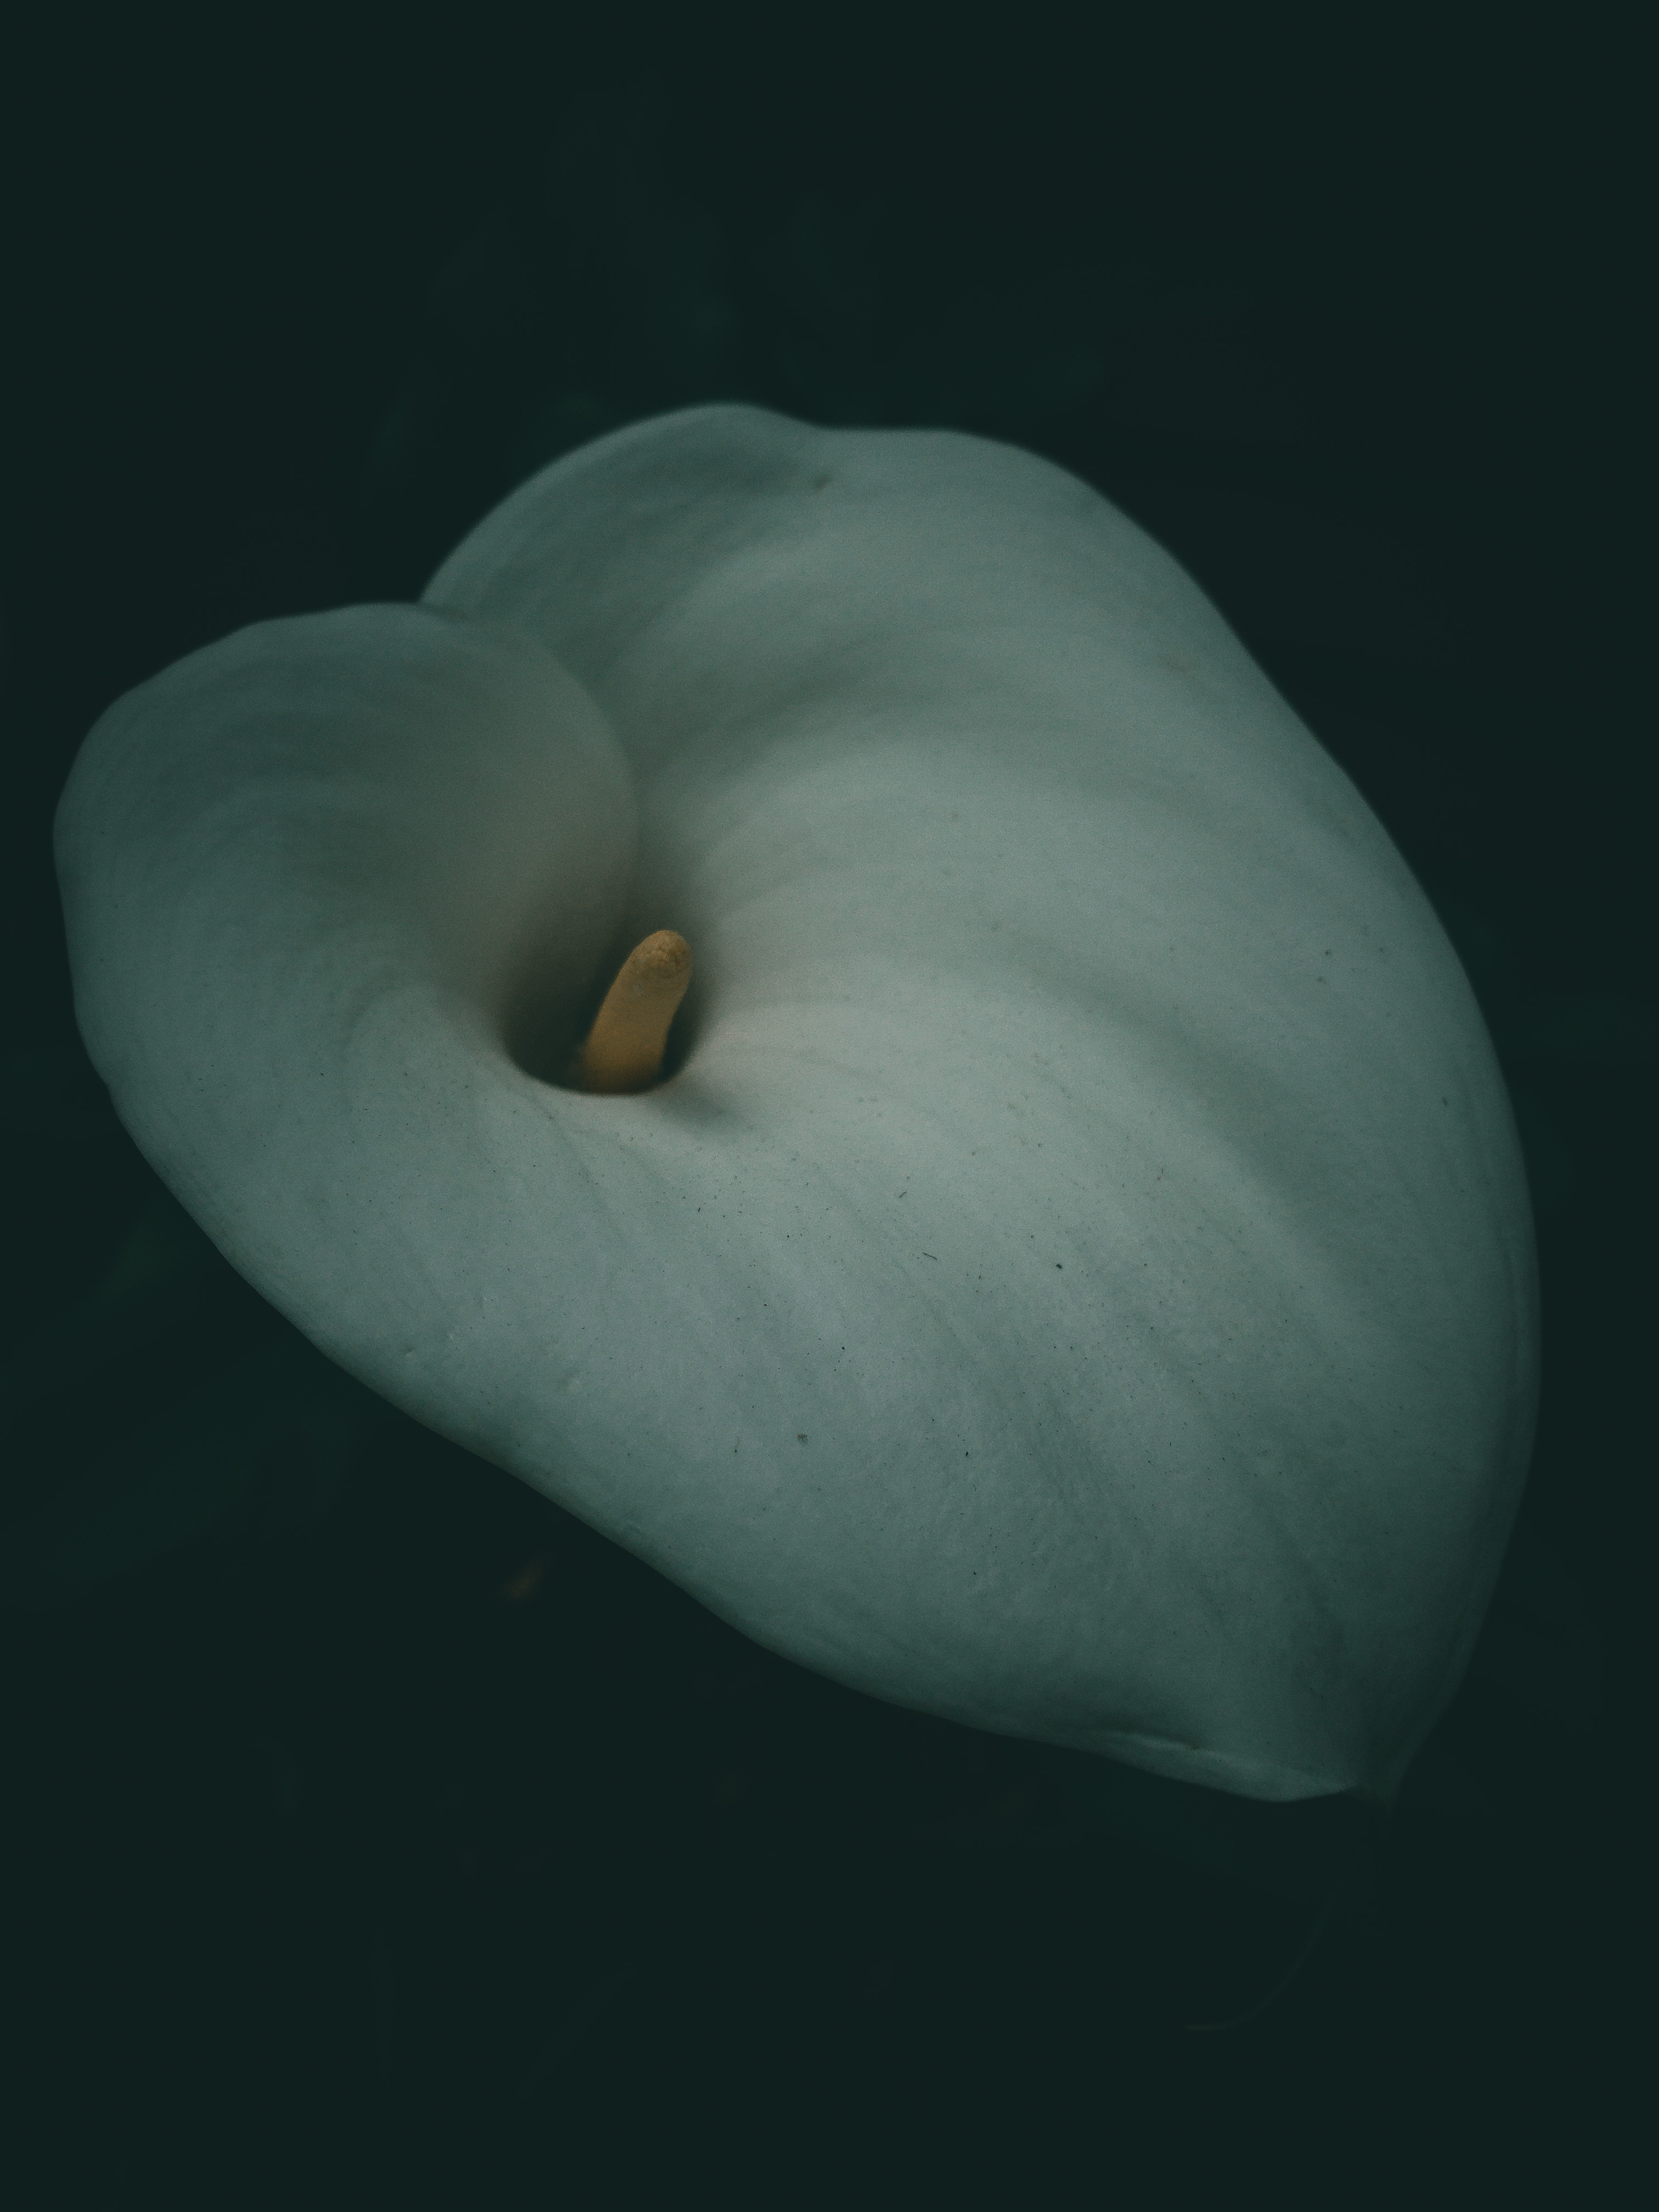 Image of a flower